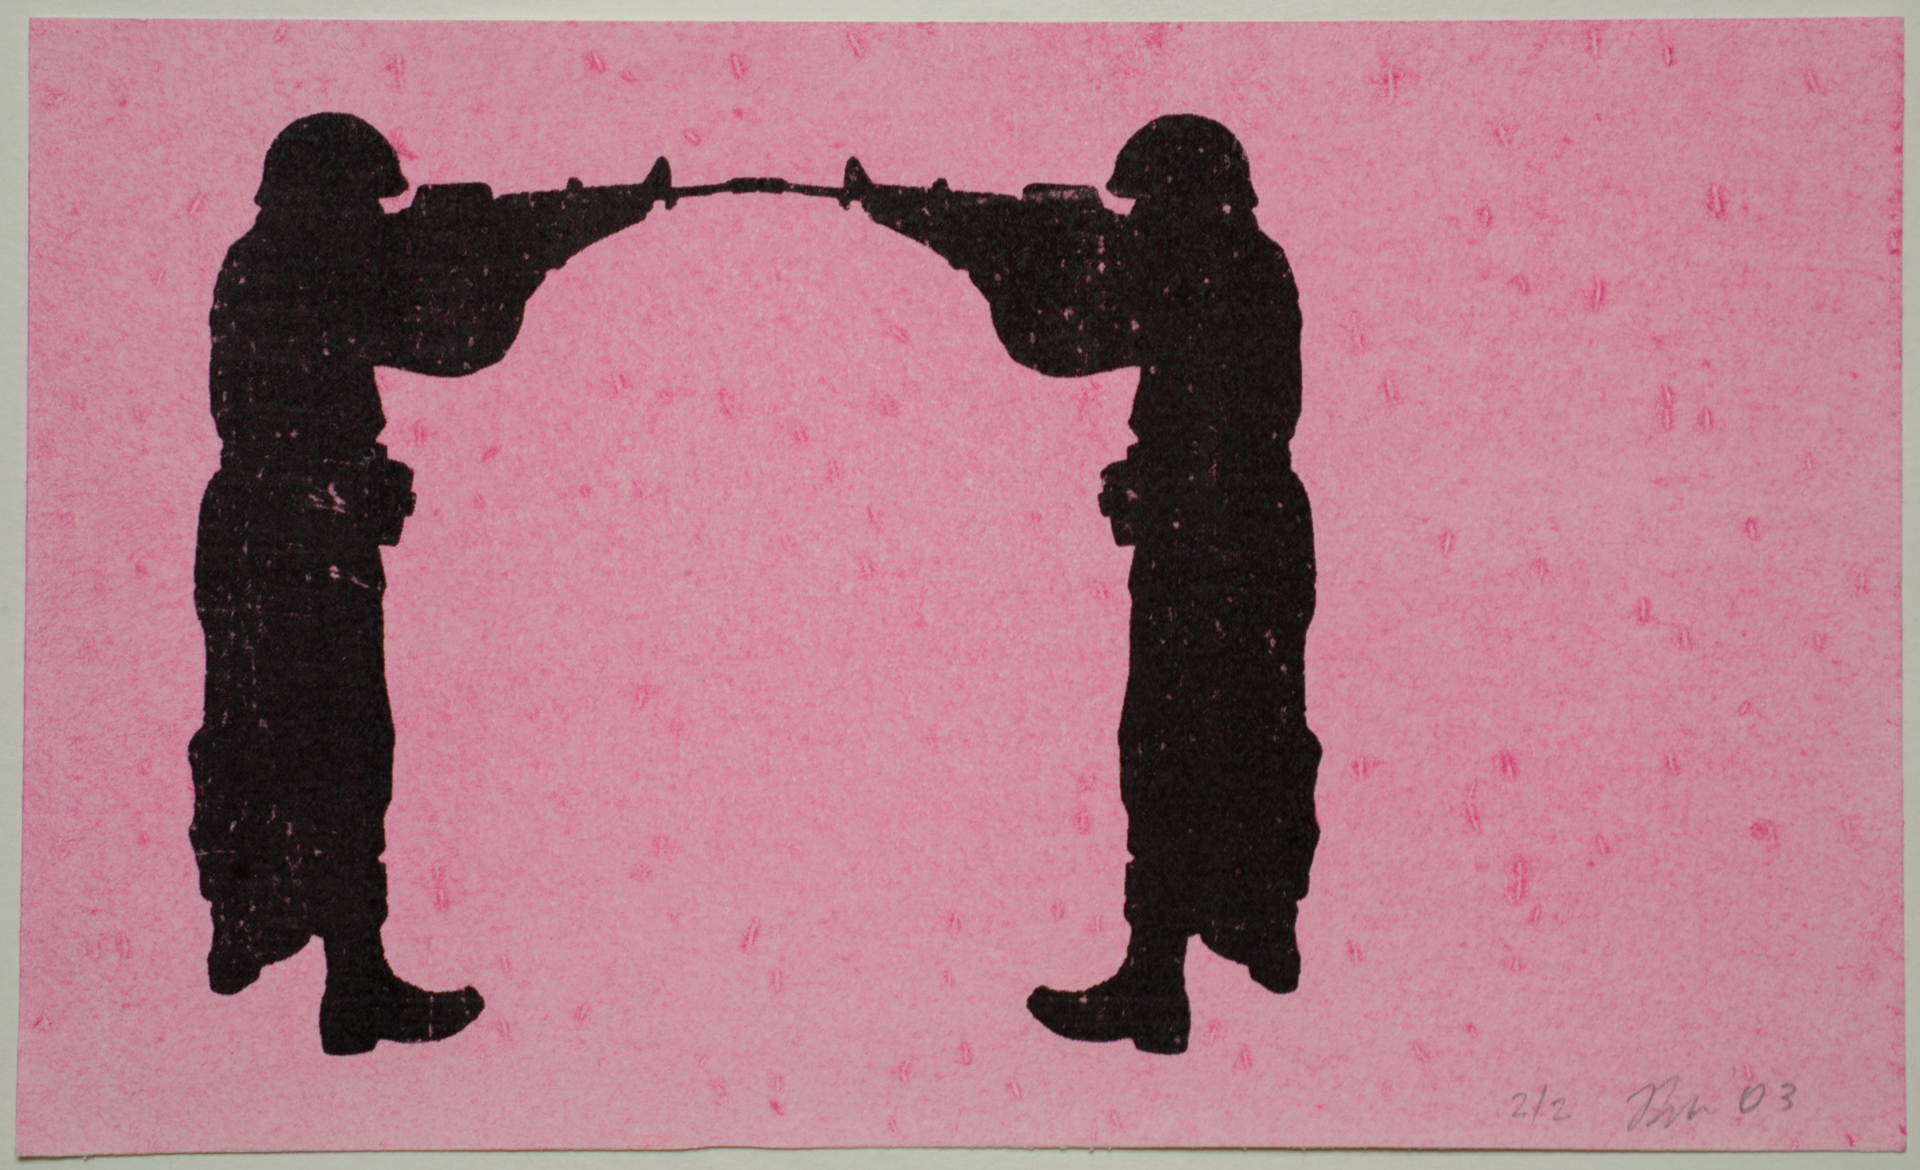 Romeo Alaeff, 'PERPETUAL STANDOFF' from 'War on the Brain.' Limited Variable Edition Print Edition, 2003. 9 x 5.5 in. (22.86 x 13.97 cm.)